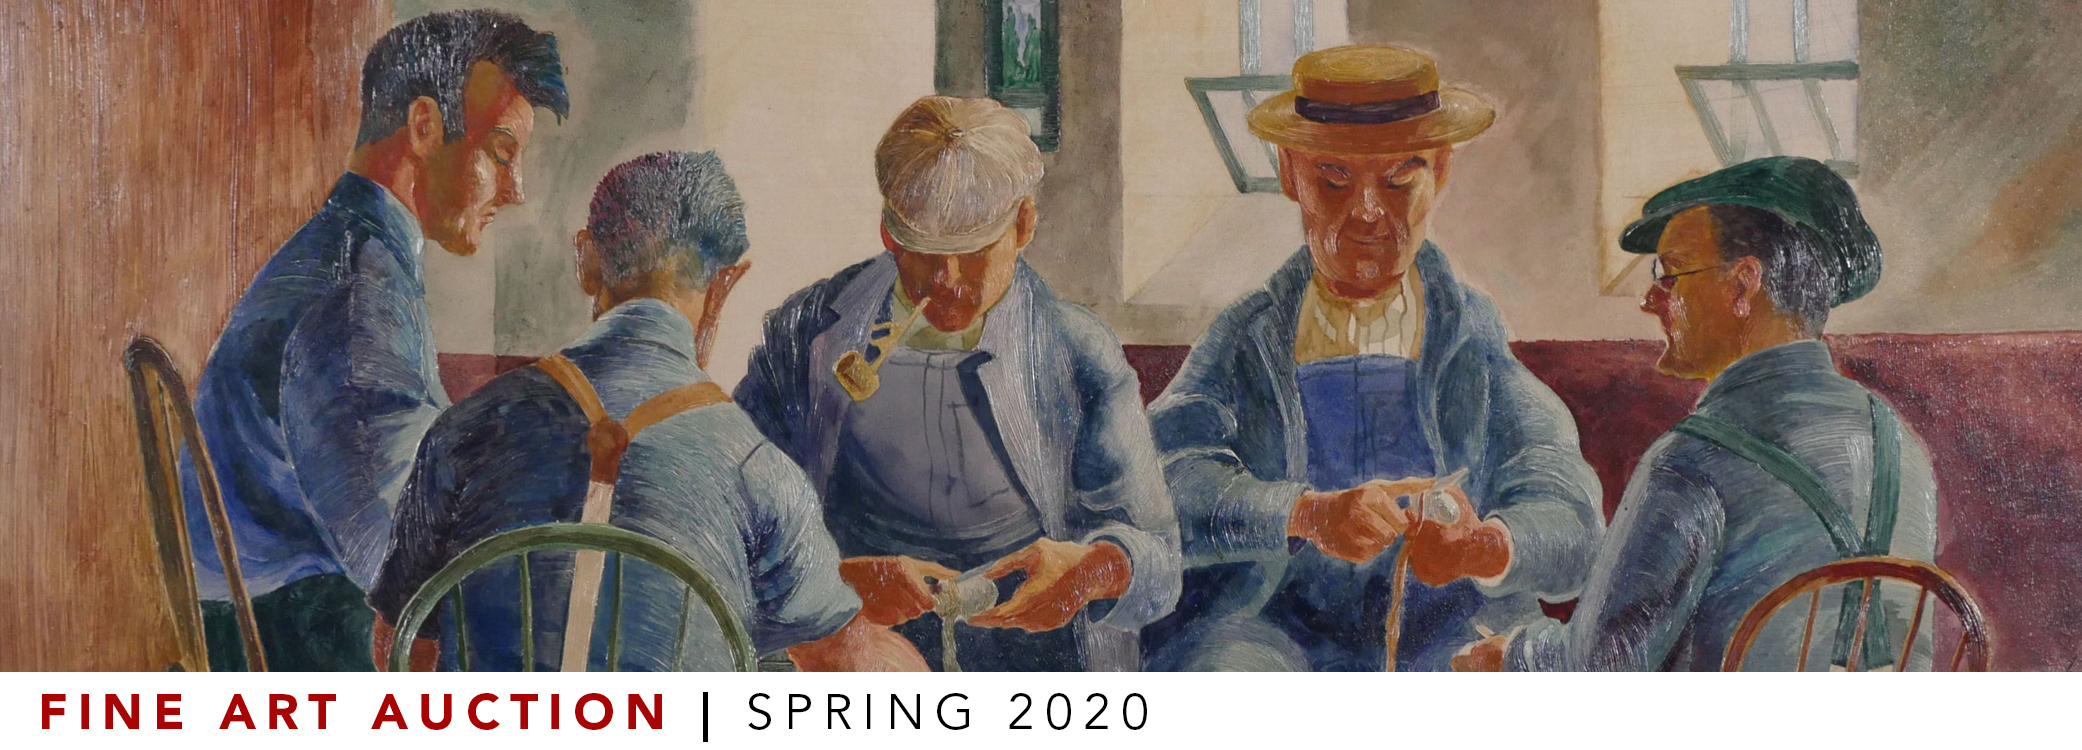 Myers - Auction Spring 2020 02